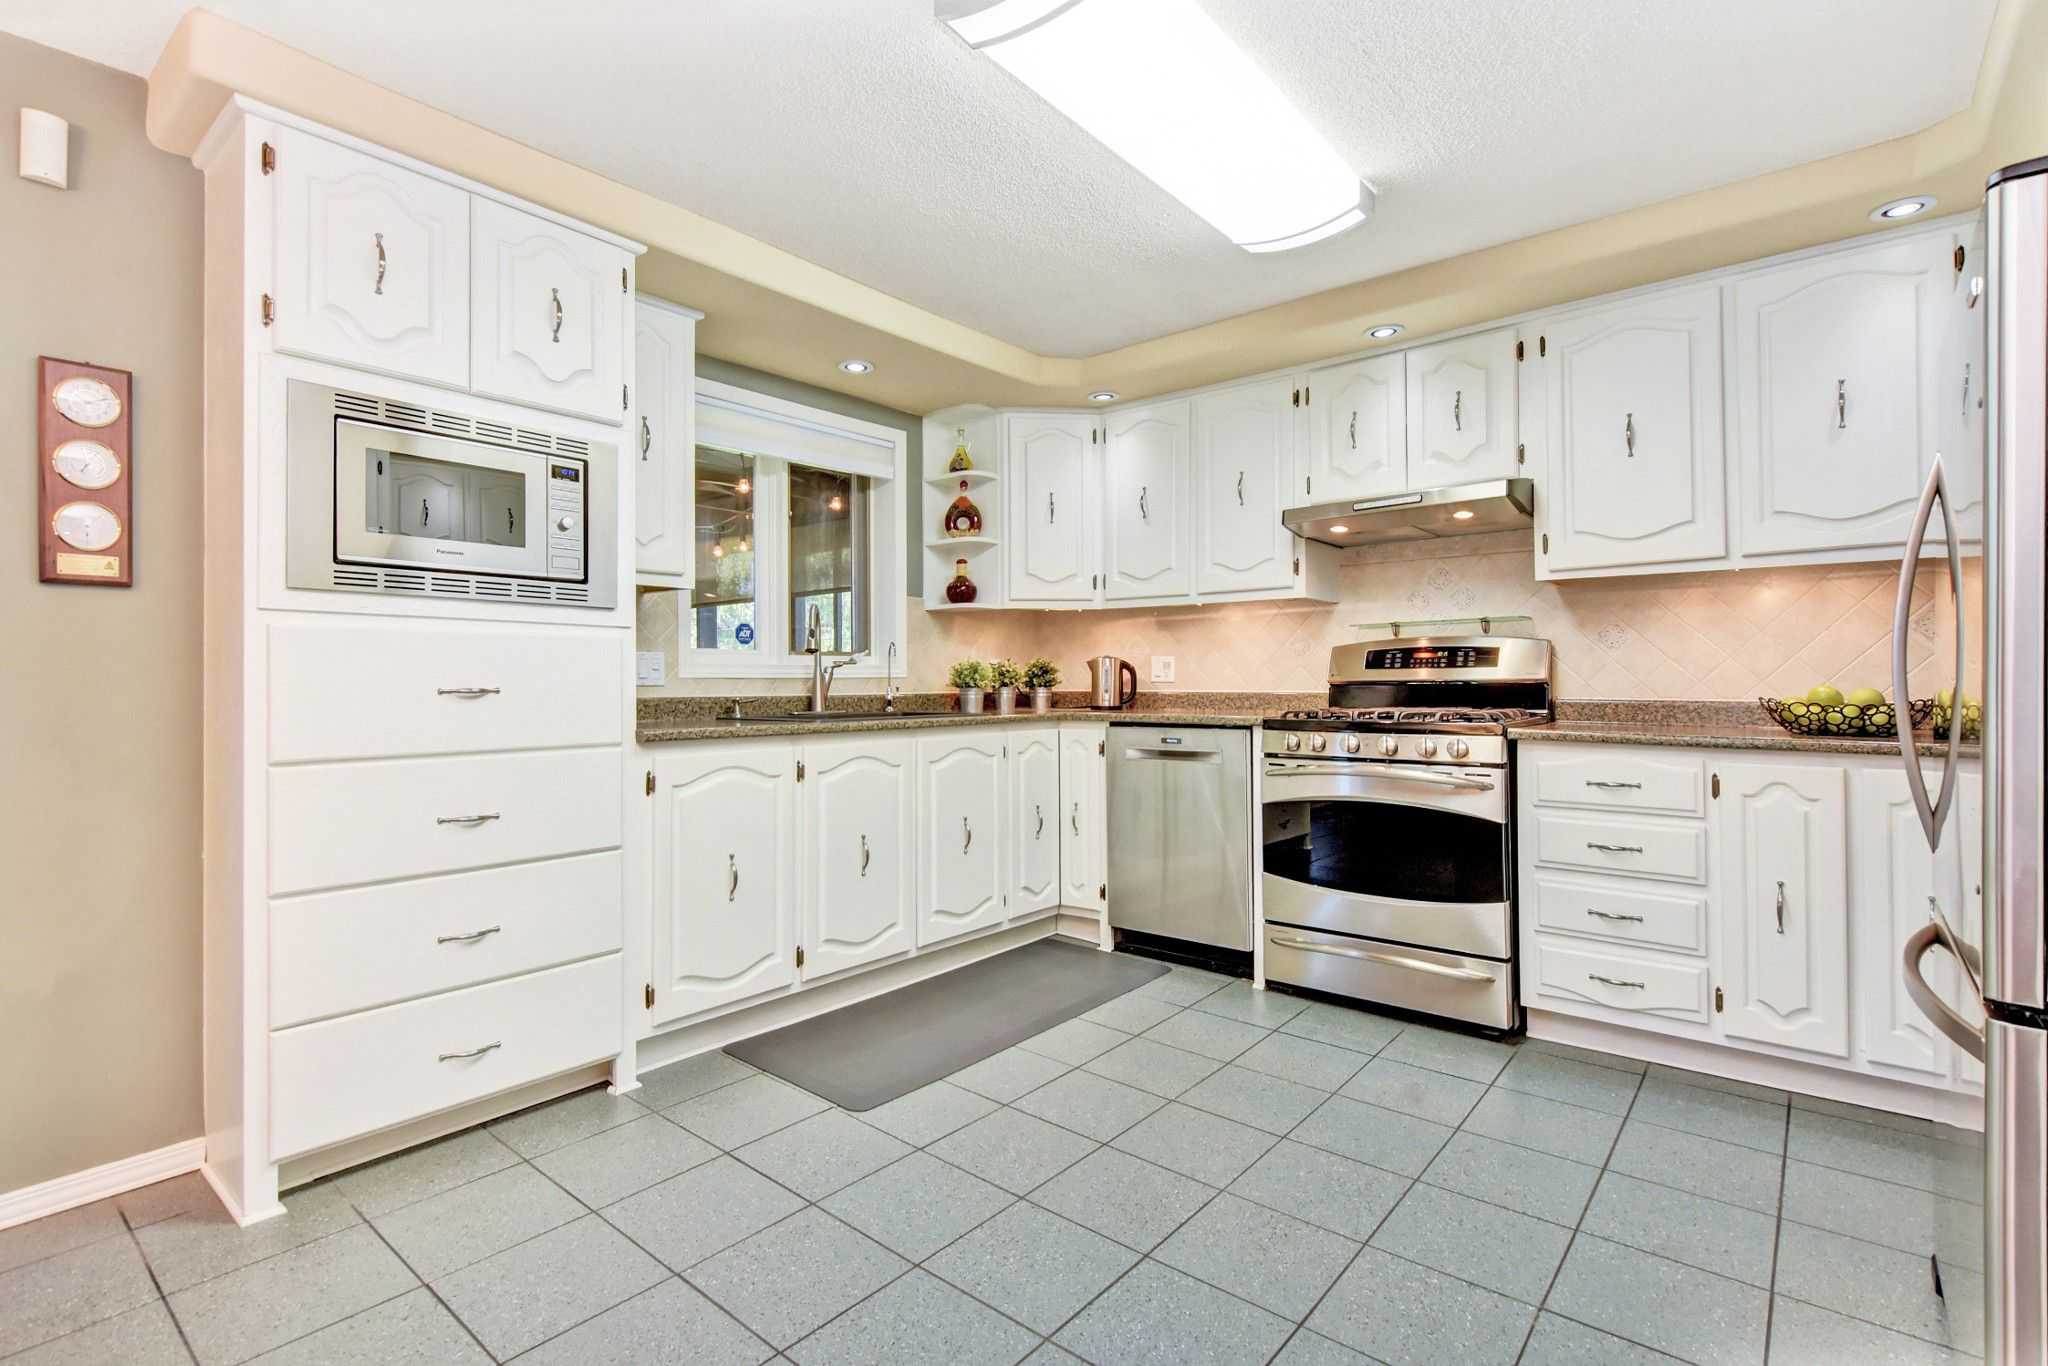 Photo 12: Photos: 5000 Dunning Road in Ottawa: Bearbrook House for sale